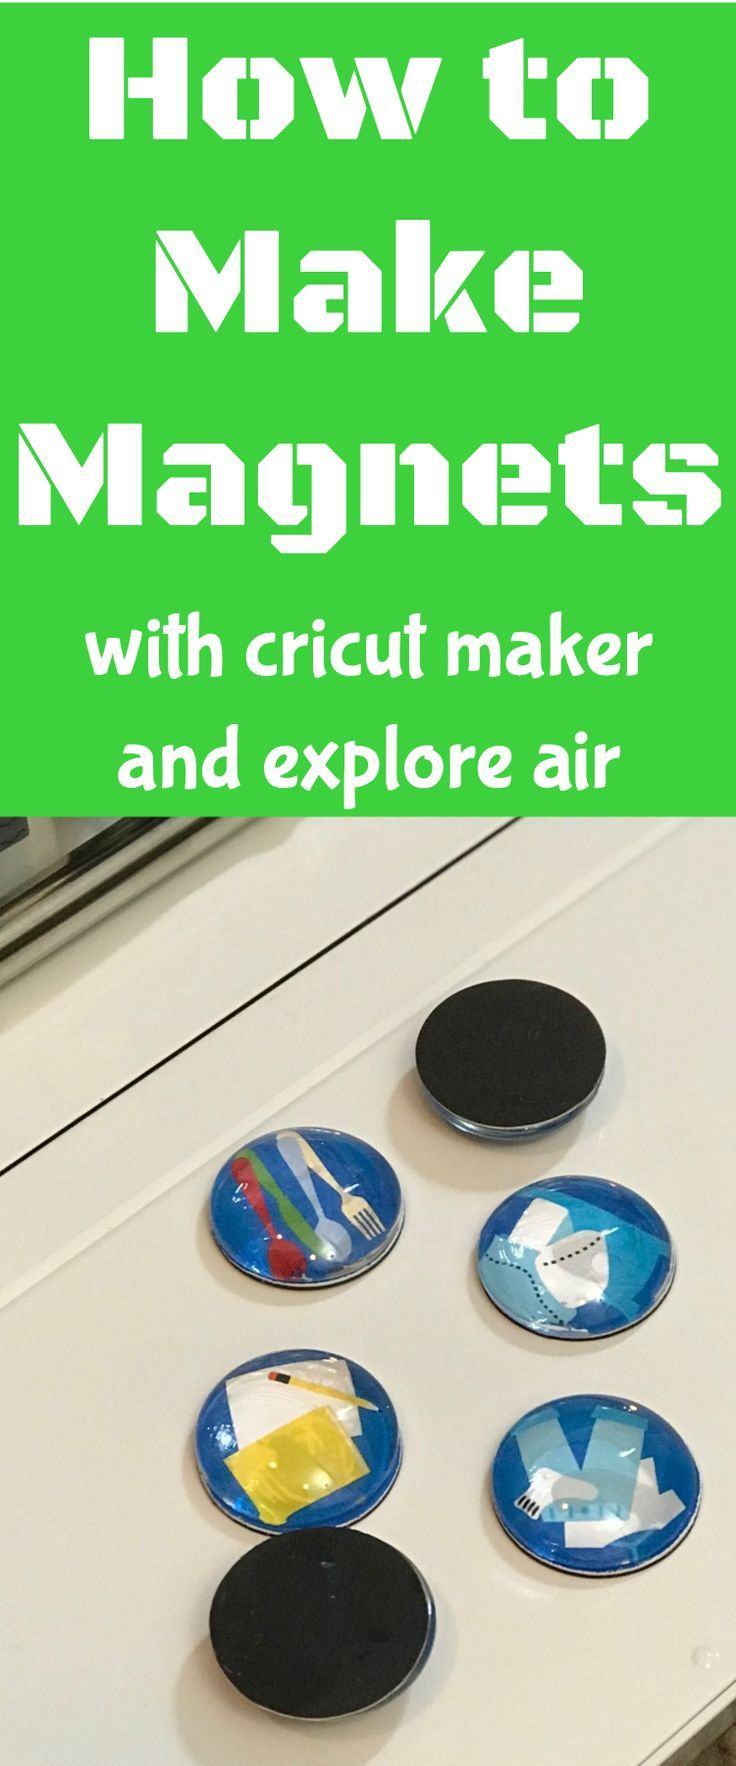 how to make magnets / cricut explore air / cricut maker / diy project / magnet #cricut #cricutmaker #cricutprojects  via @clarkscondensed